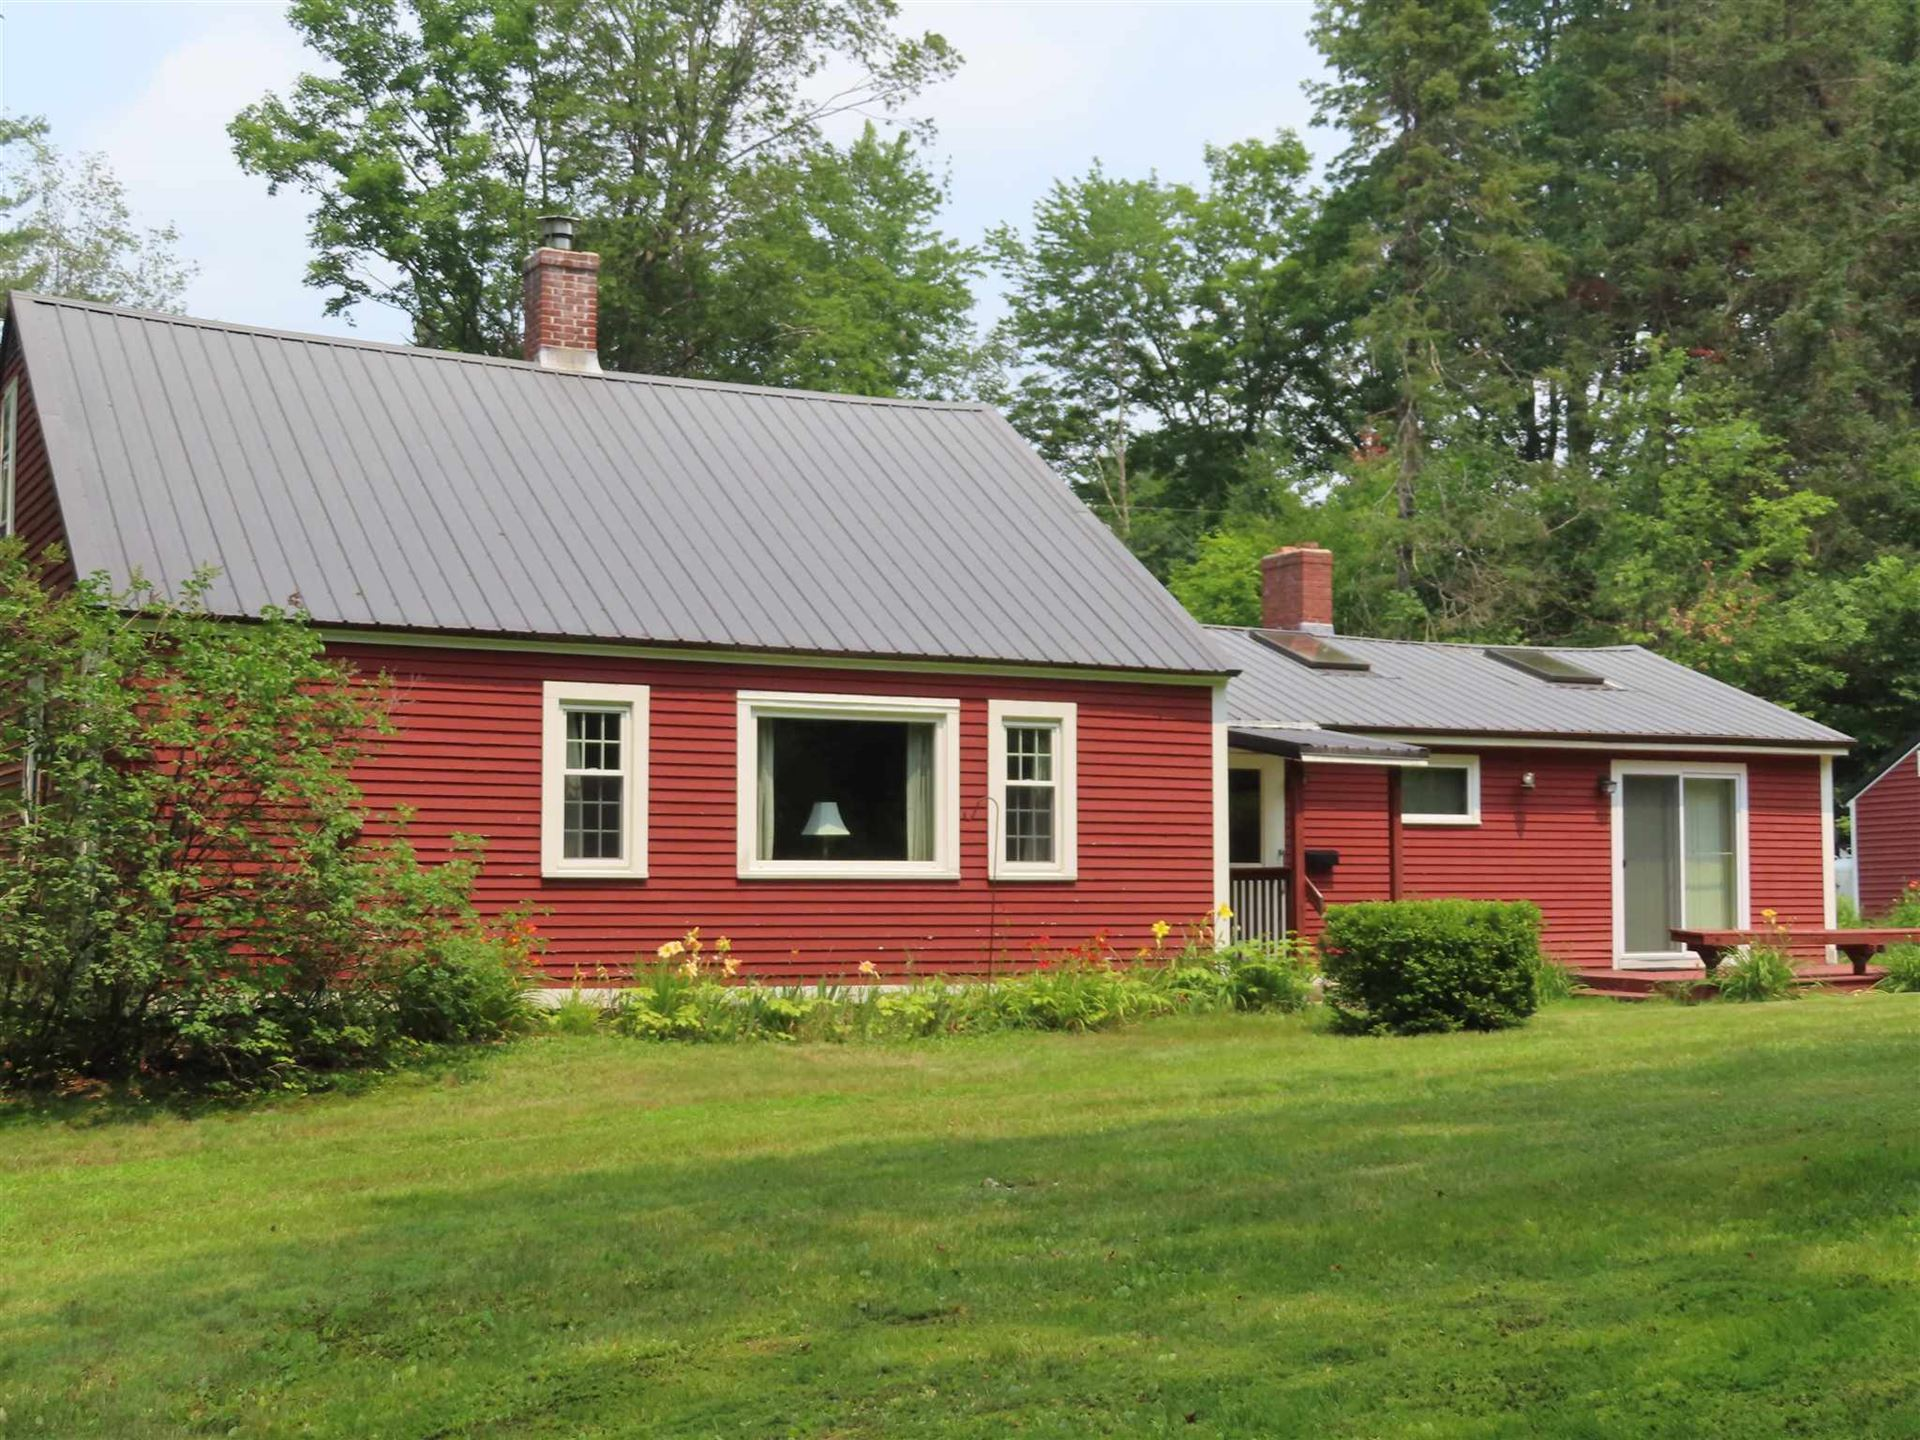 460 Atherton Hill Road, Chesterfield, NH 03462-4605 - MLS#: 4872888